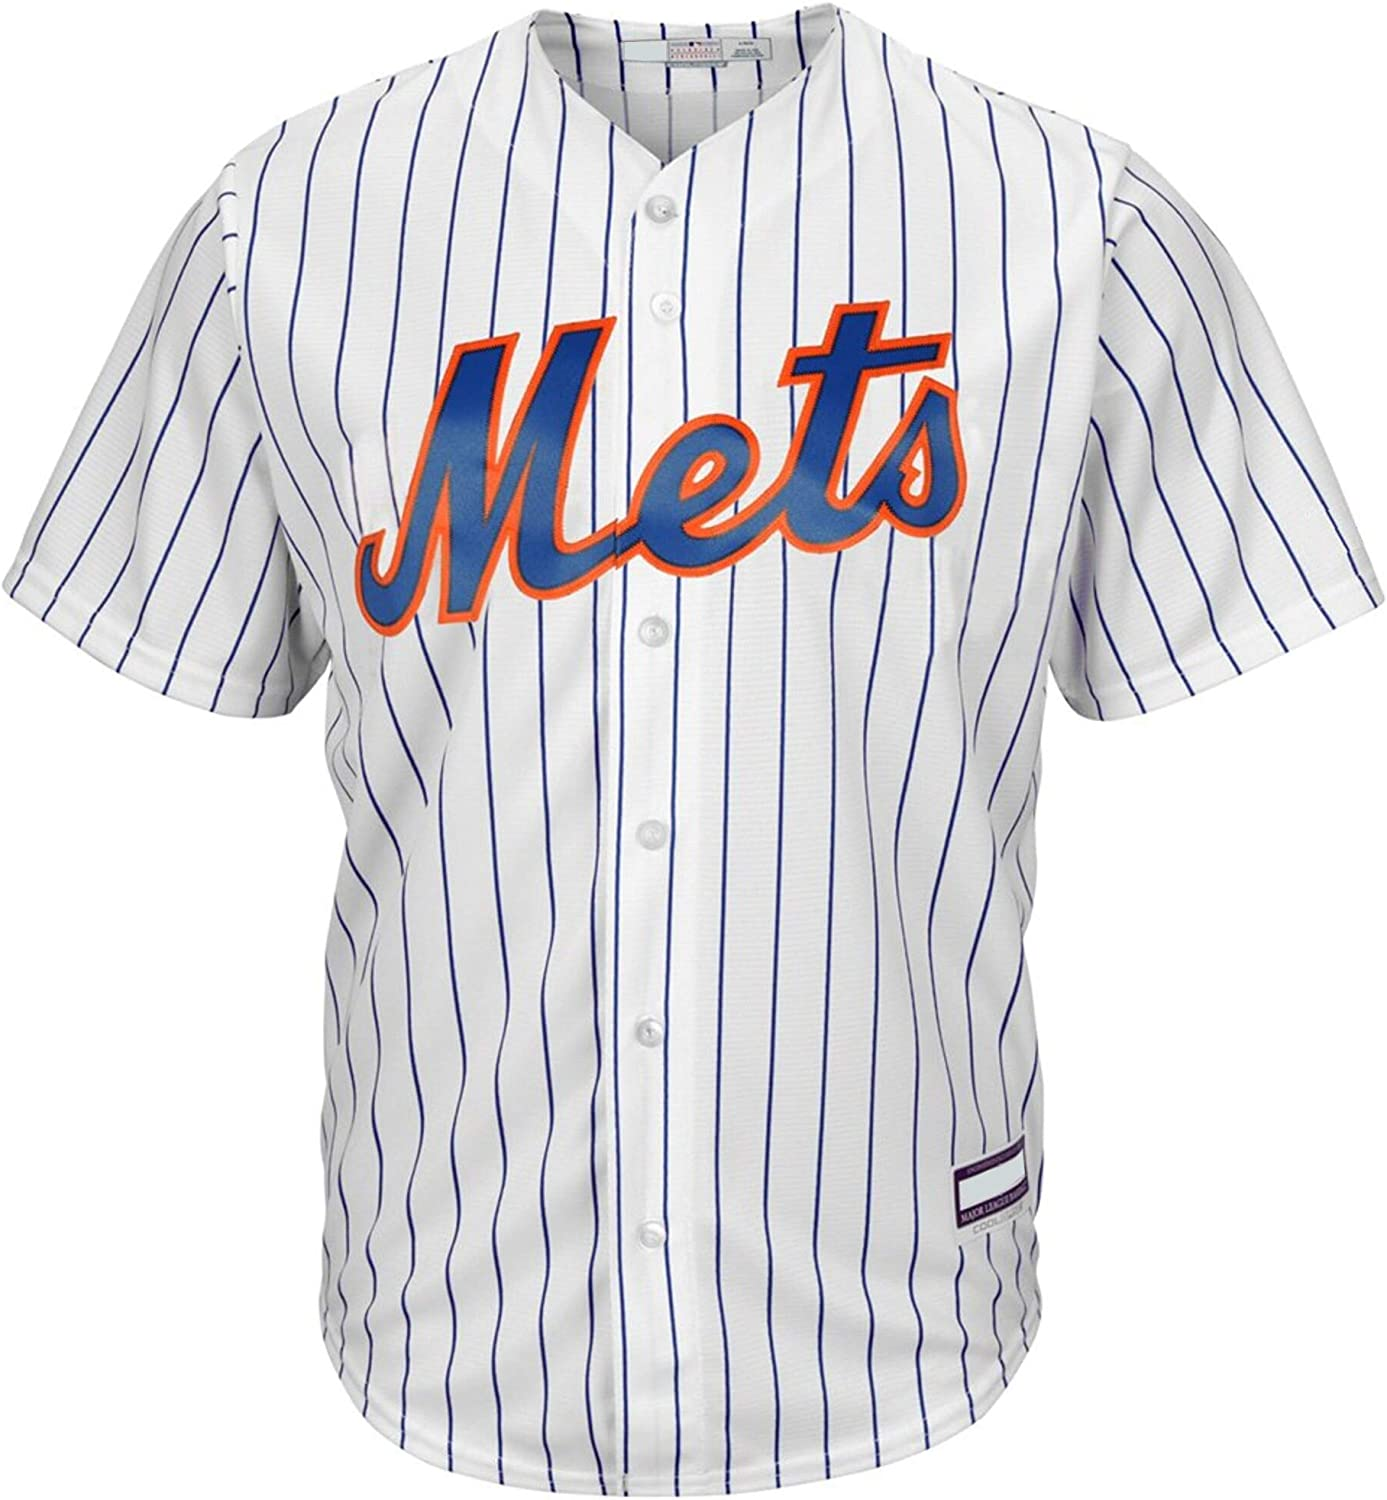 Pete Alonso New York Mets MLB Boys Youth 8-20 Player Jersey